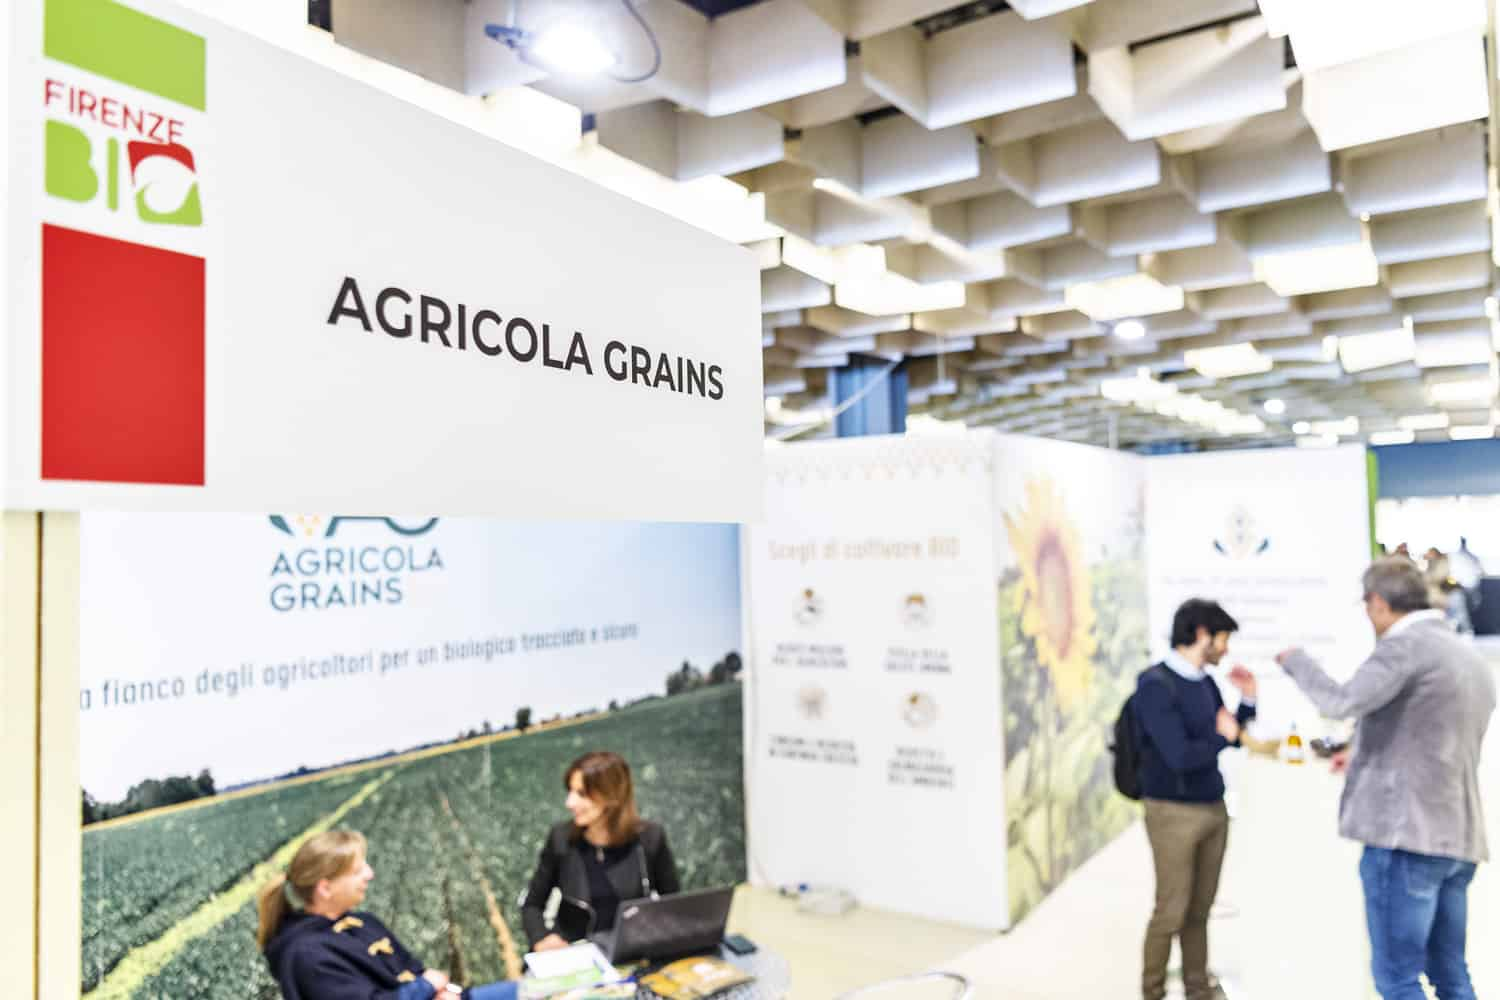 firenze-bio-agricola-grains